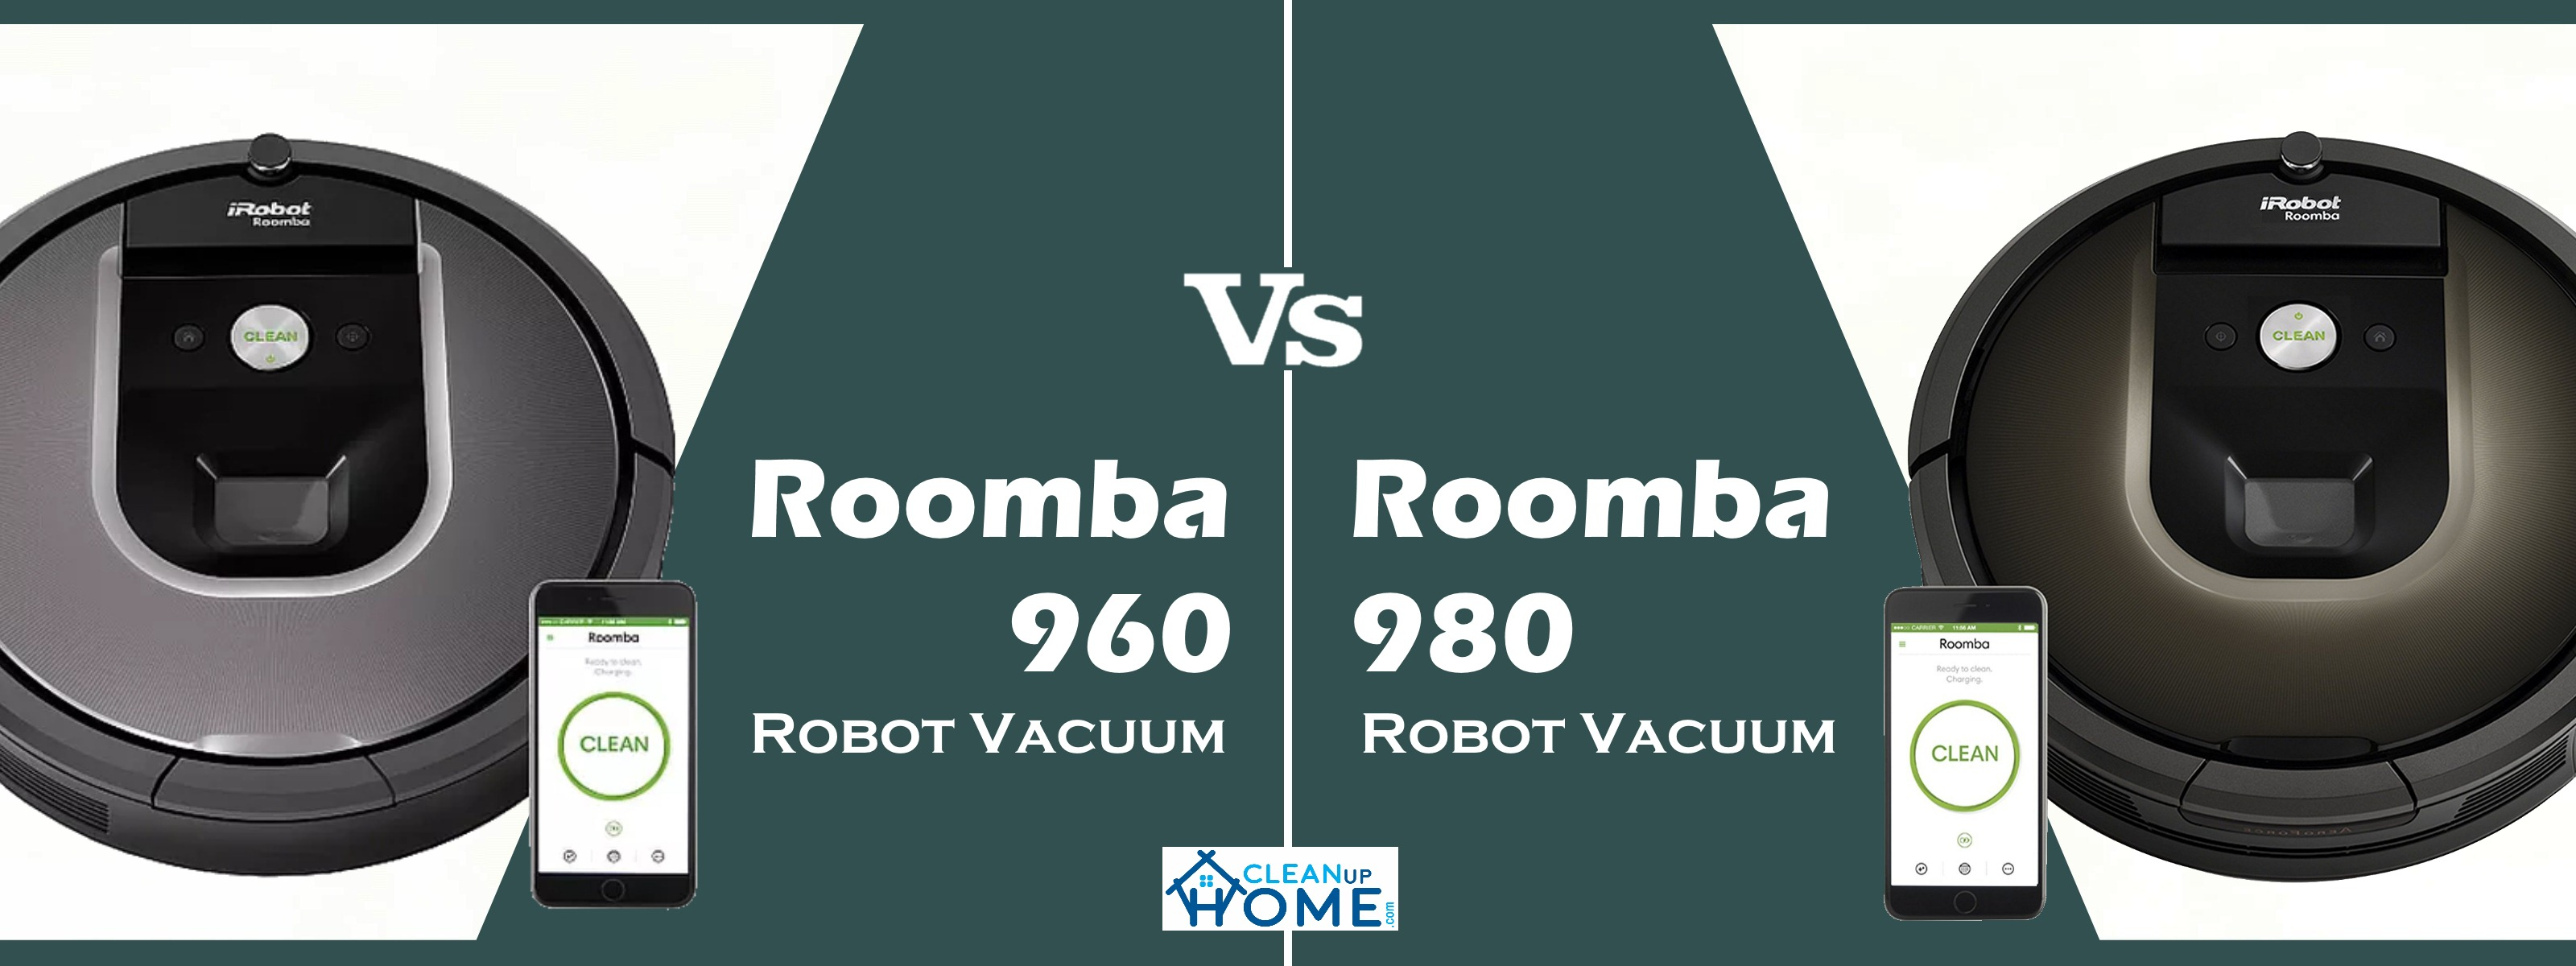 roomba 960 vs 980 robot vacuum